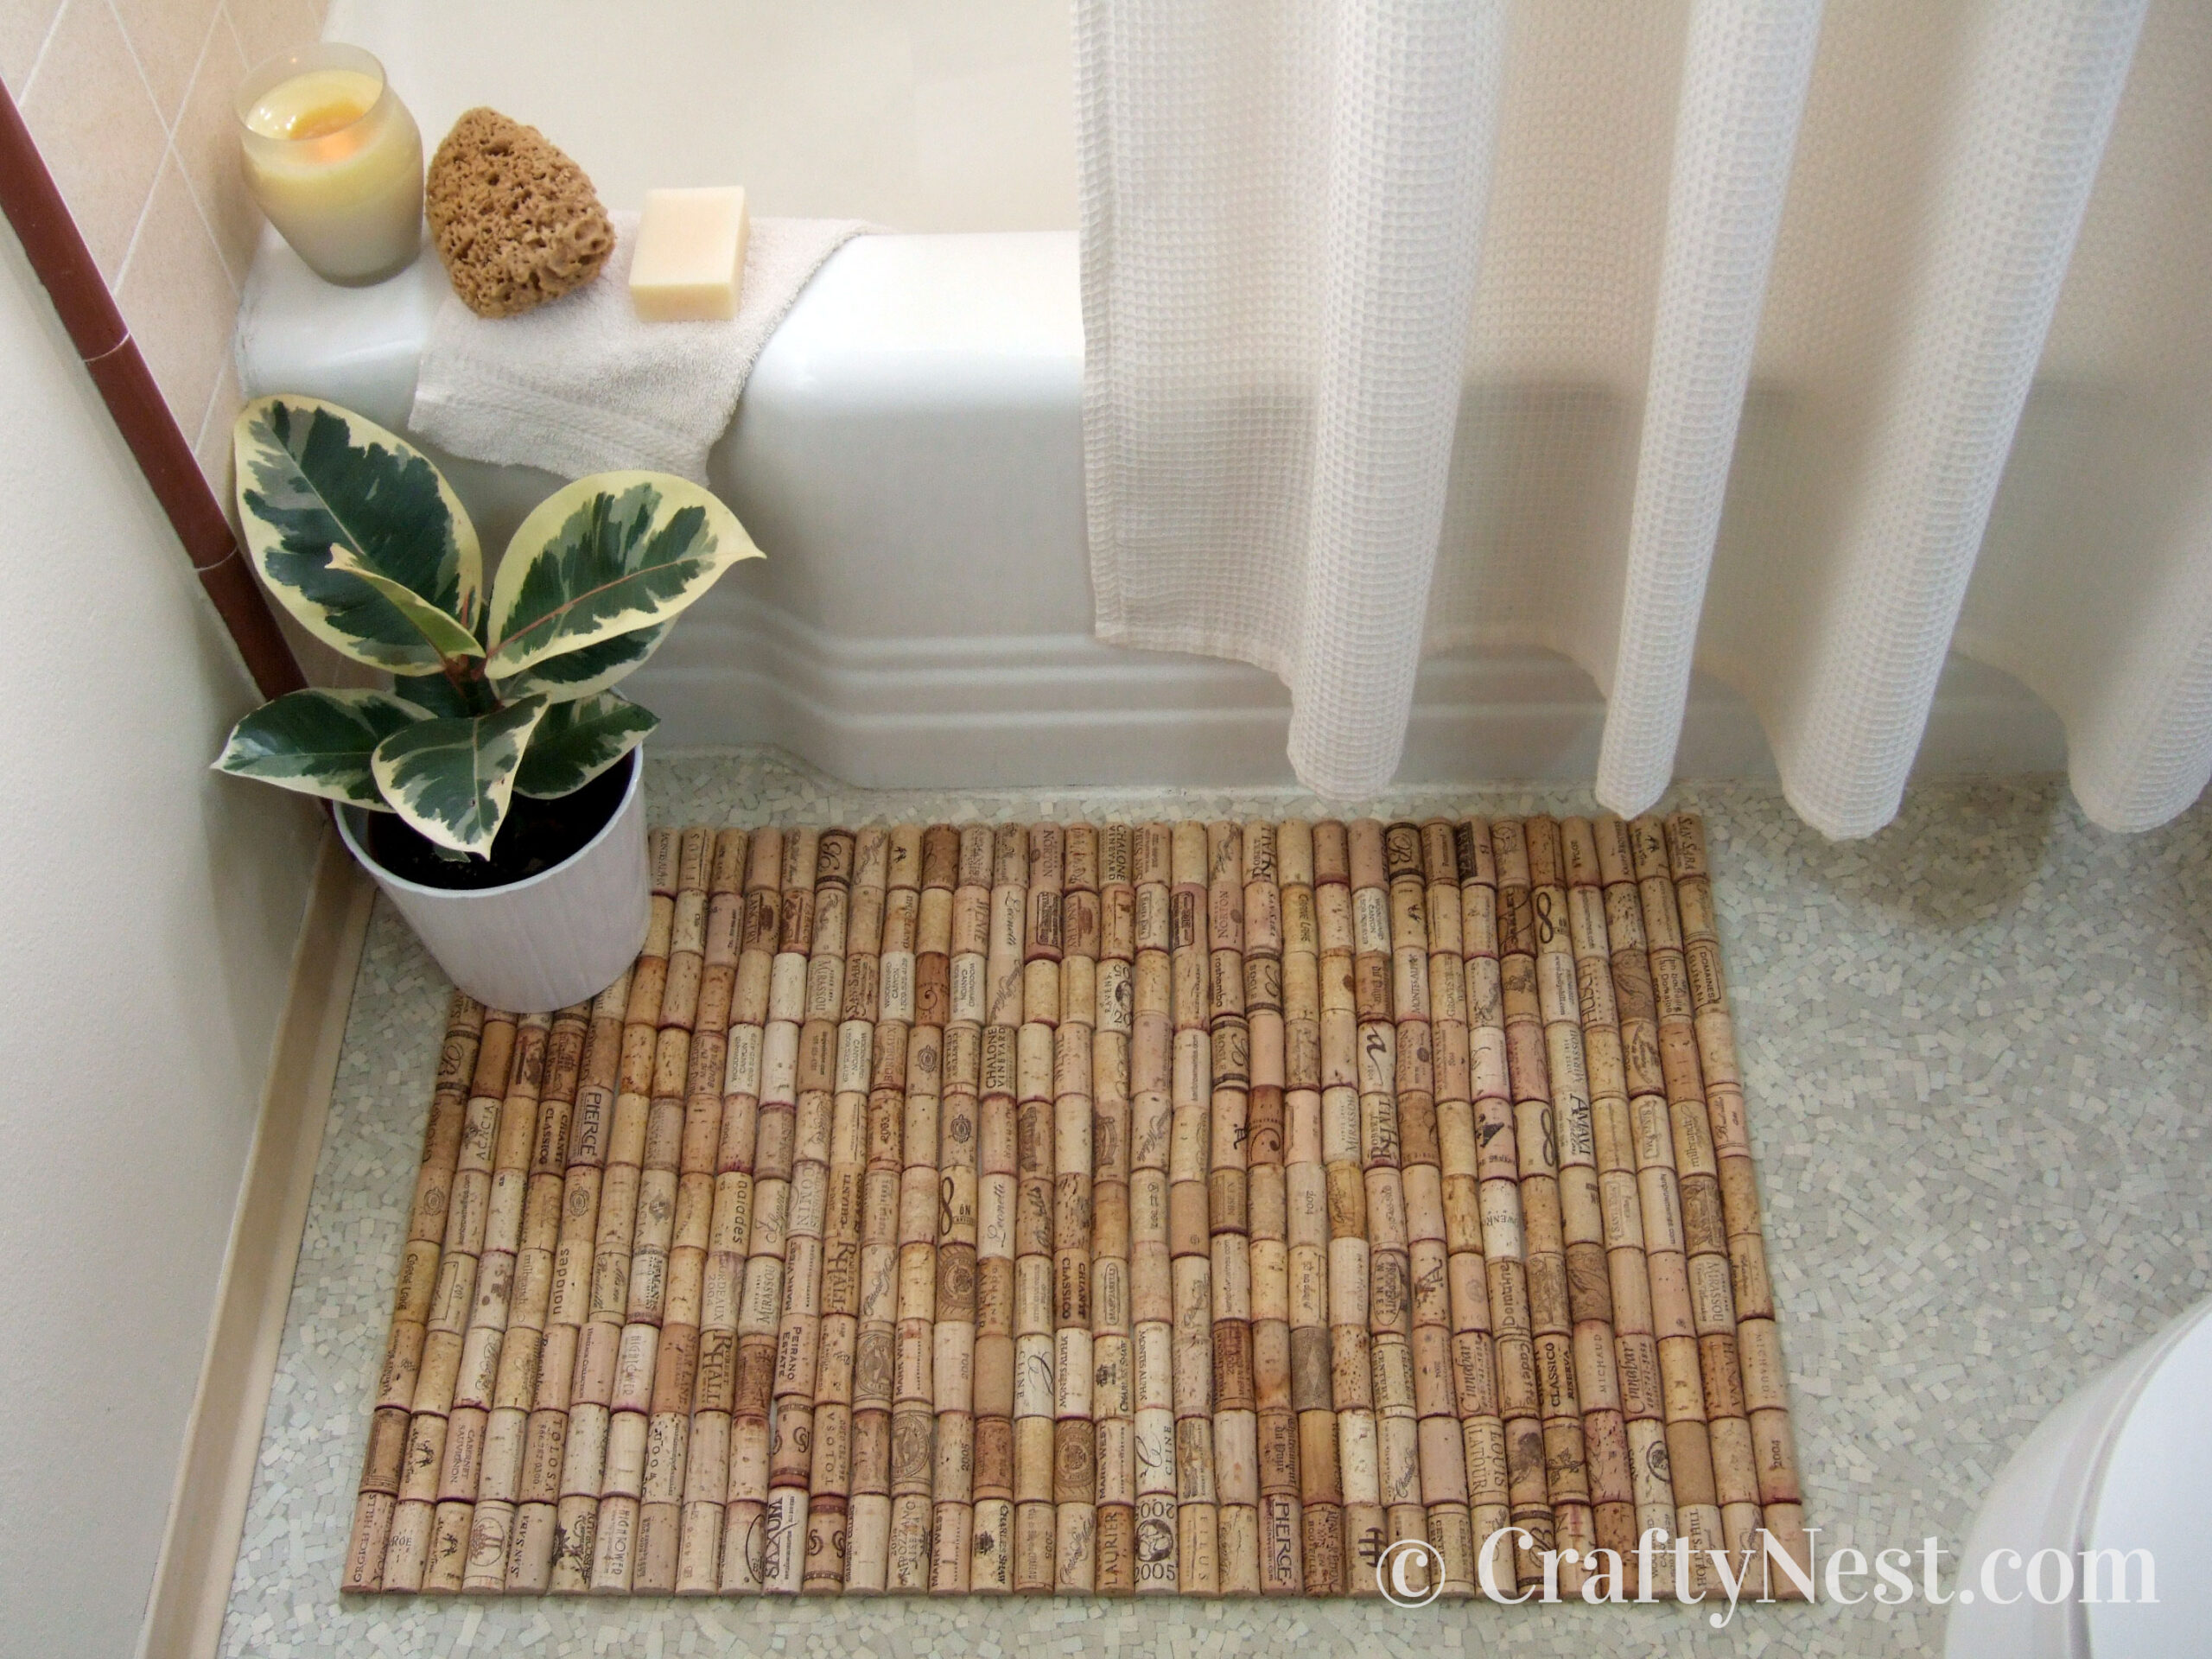 Bath mat made of wine corks, photo